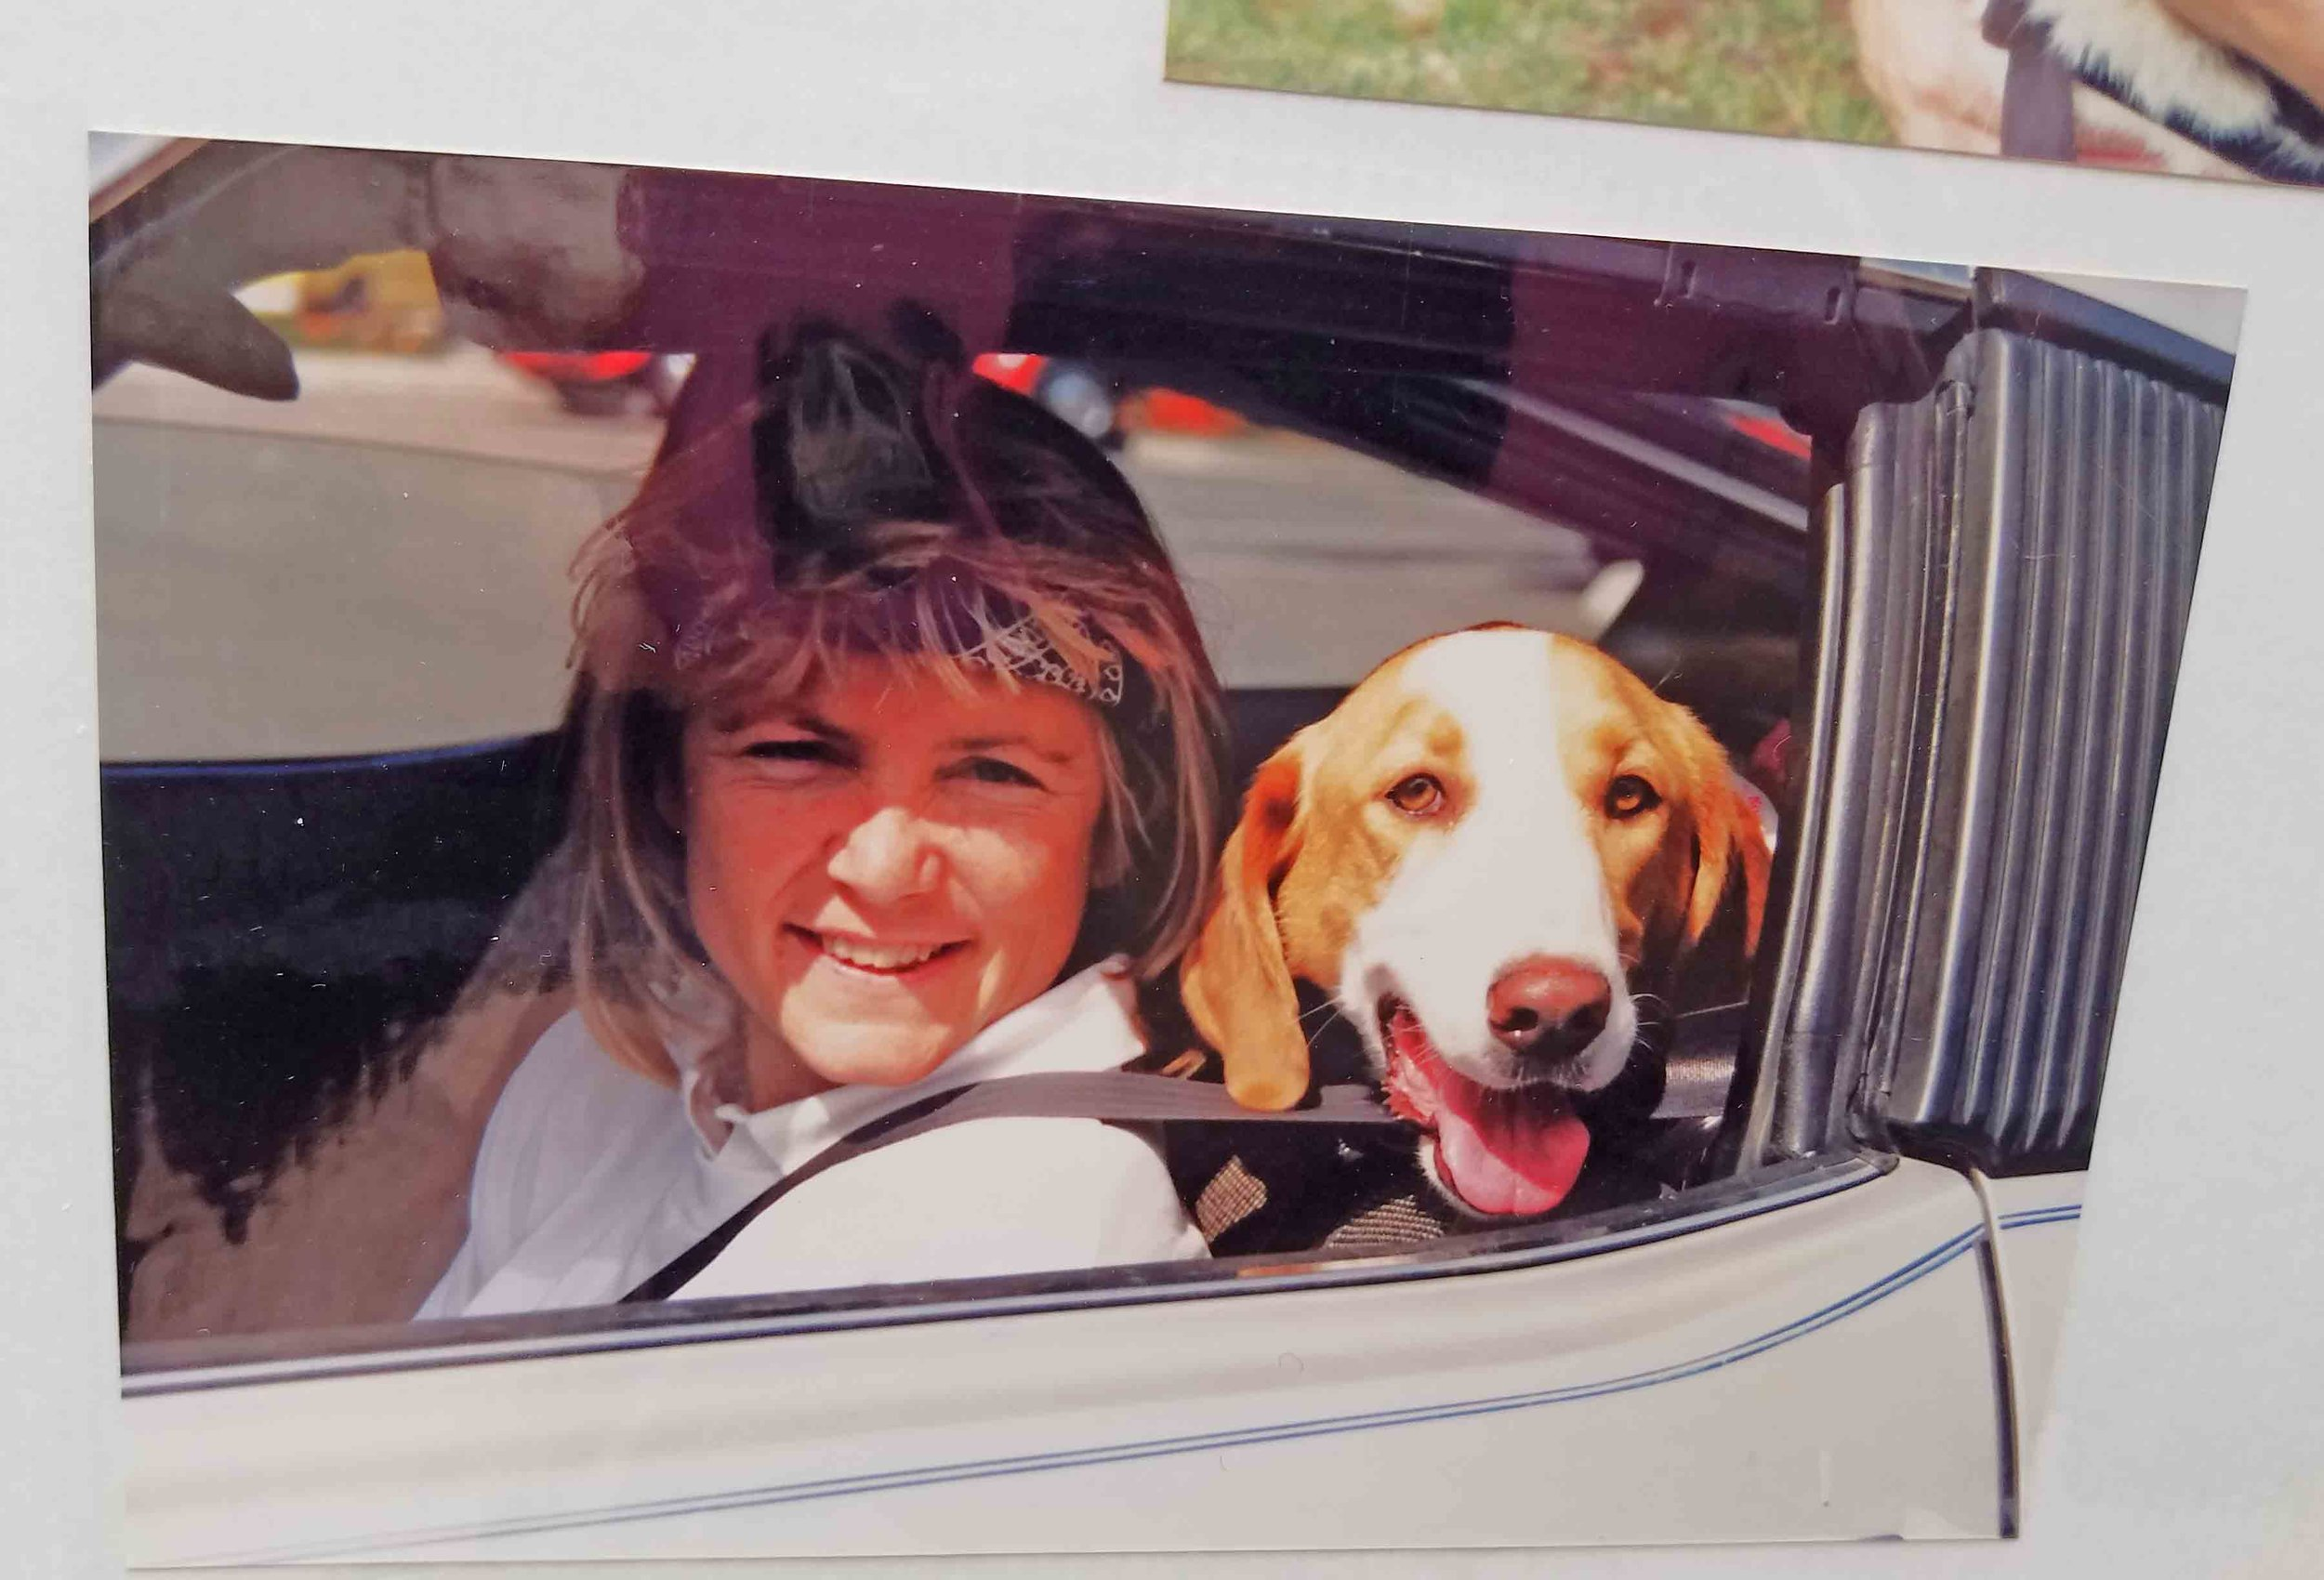 1991 - Howdy, my first basset, and my first tandem surf partner. Photo: (c) Pat Brown, DogDiary.org